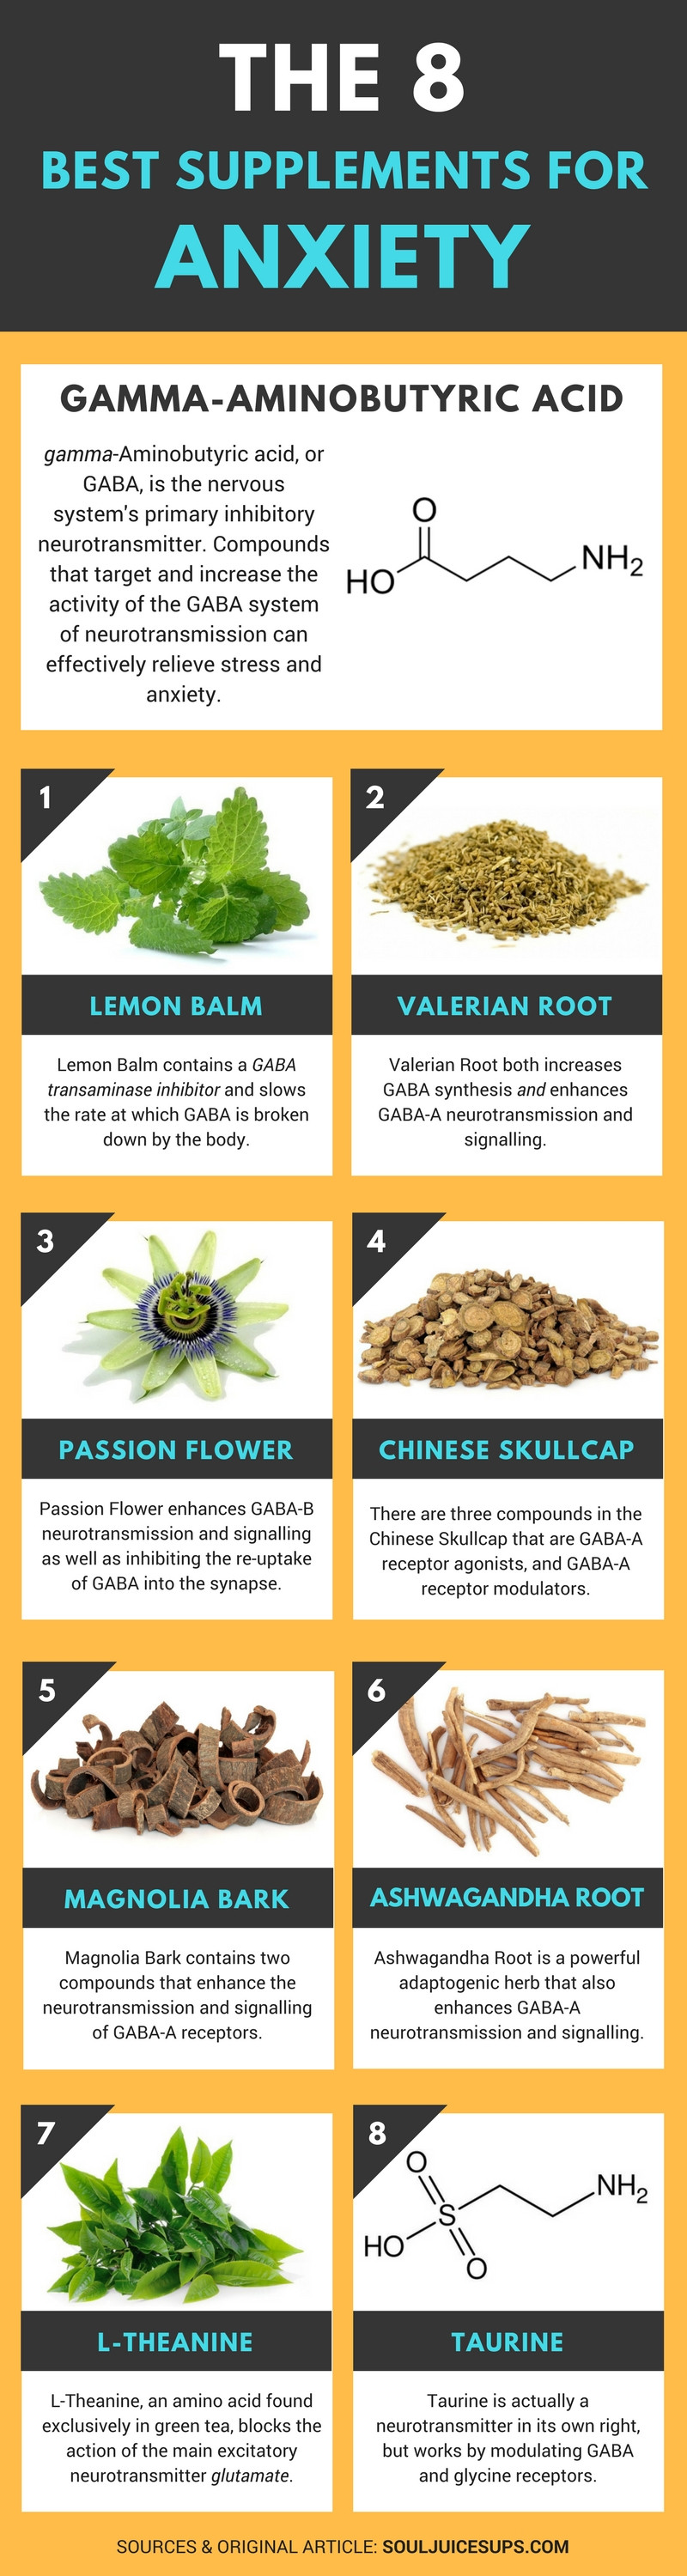 Best Supplements for Anxiety Infographic